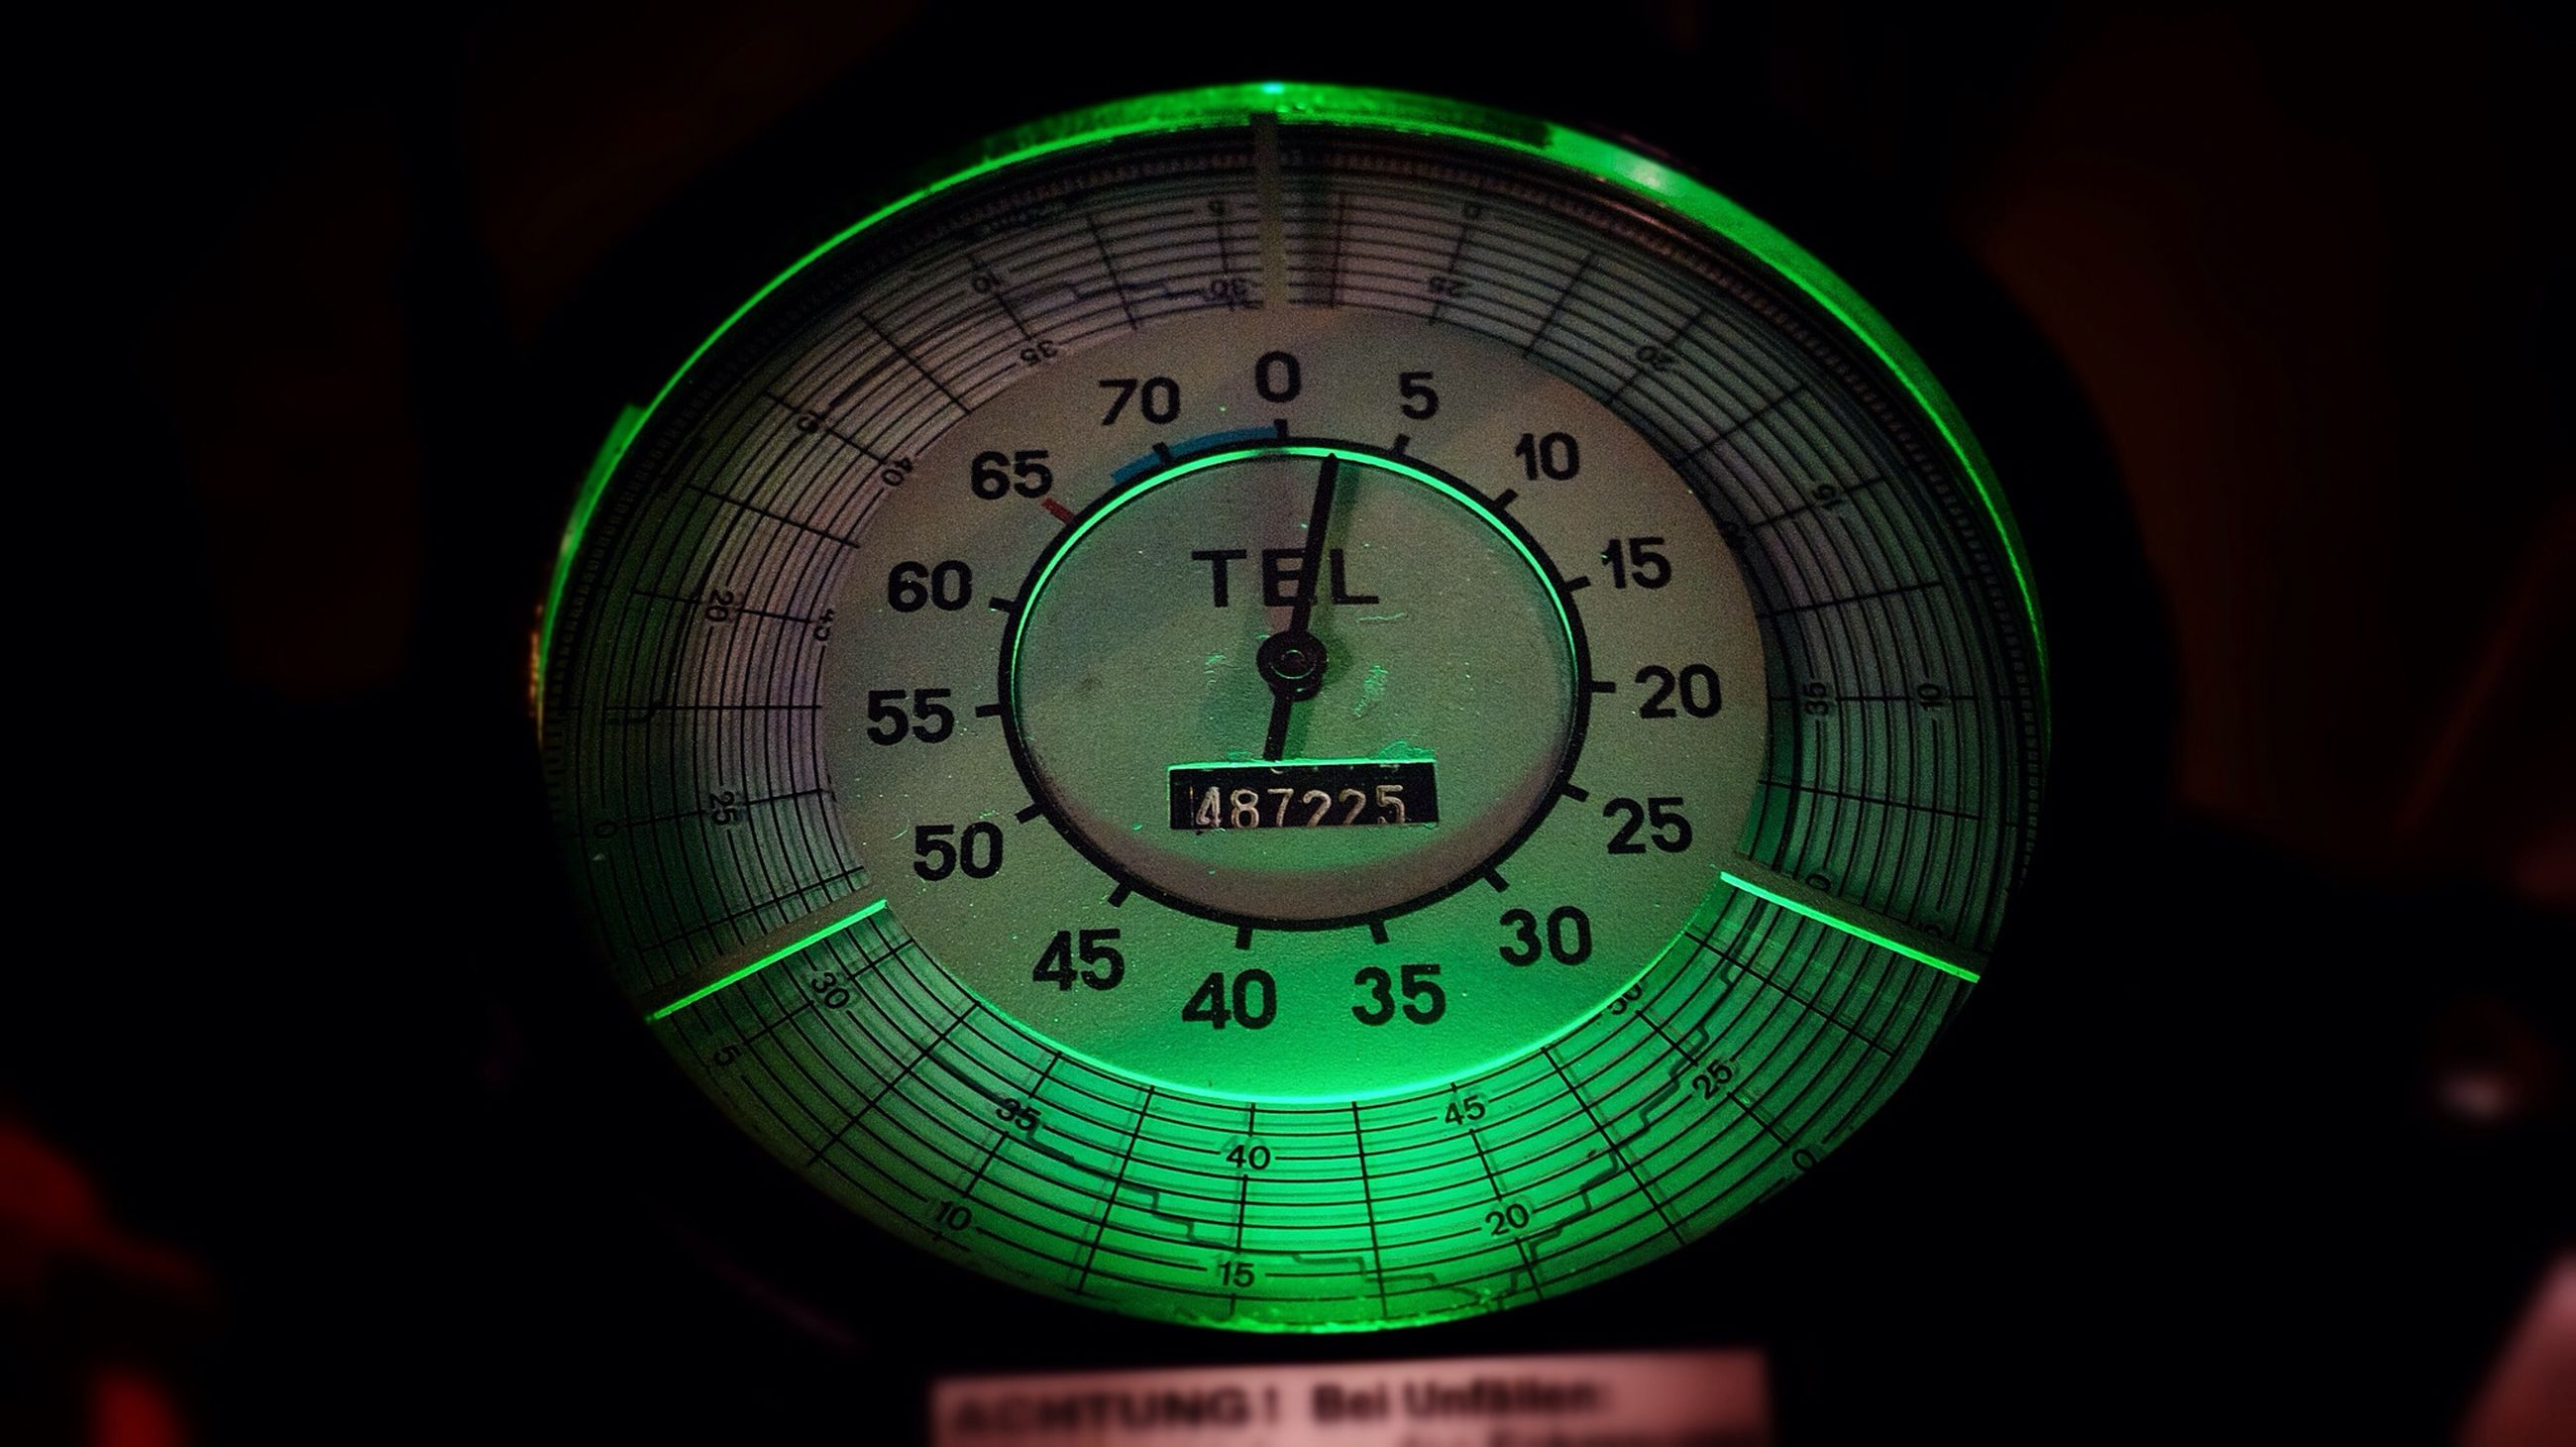 text, communication, clock, number, time, indoors, western script, close-up, technology, accuracy, old-fashioned, circle, illuminated, clock face, wall clock, instrument of measurement, minute hand, no people, metal, low angle view